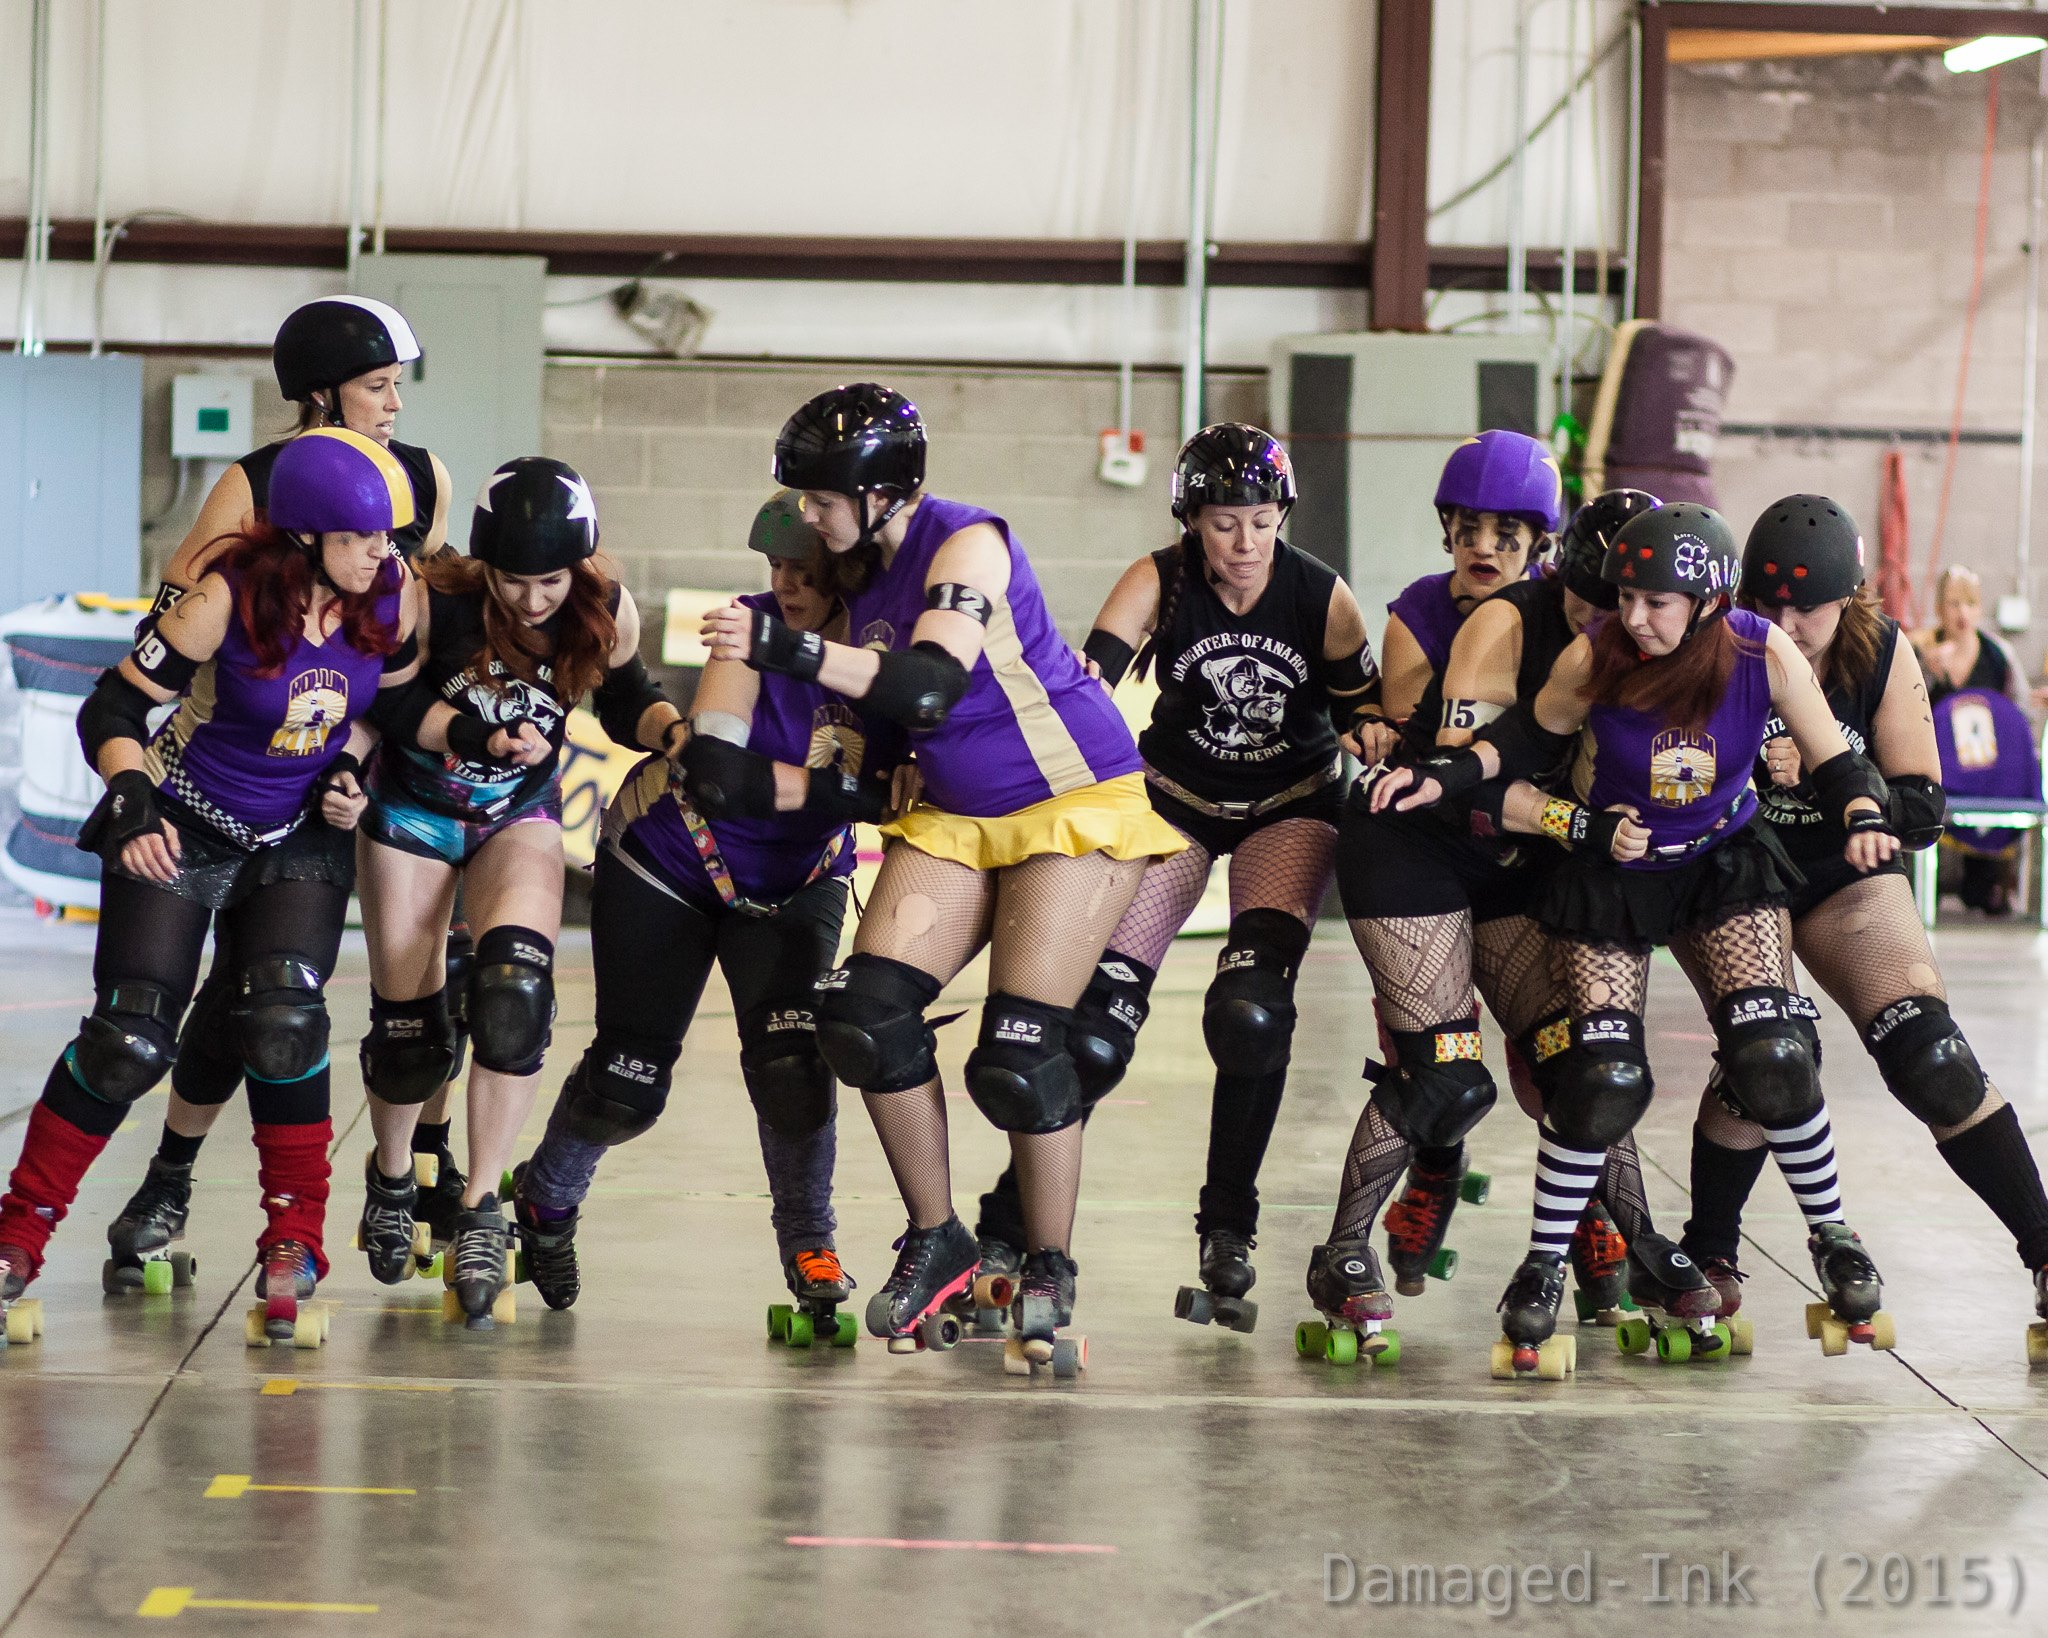 Rollin Rebellion vs Daughters of Anarchy 04.11. Photo Courtesy of Damaged-Ink